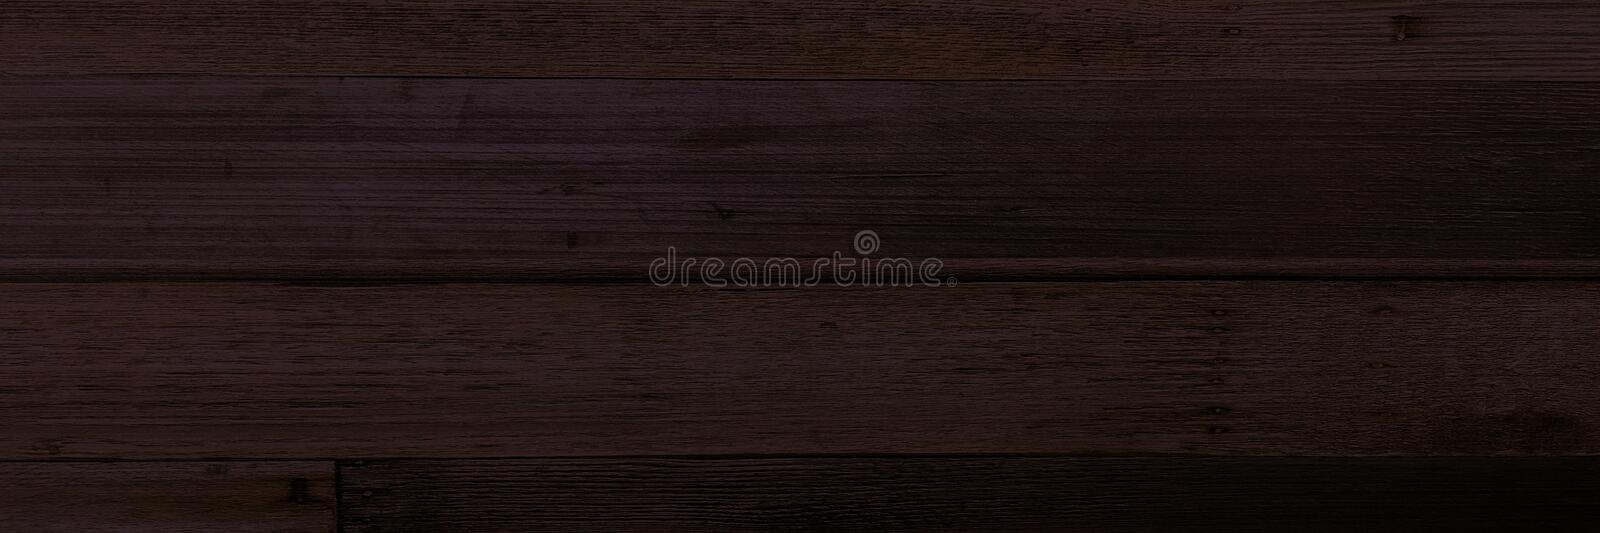 Wood texture background, wood planks. Old washed wood table pattern top view. Wood texture background, wood planks. Old washed wood table pattern top view royalty free stock photo